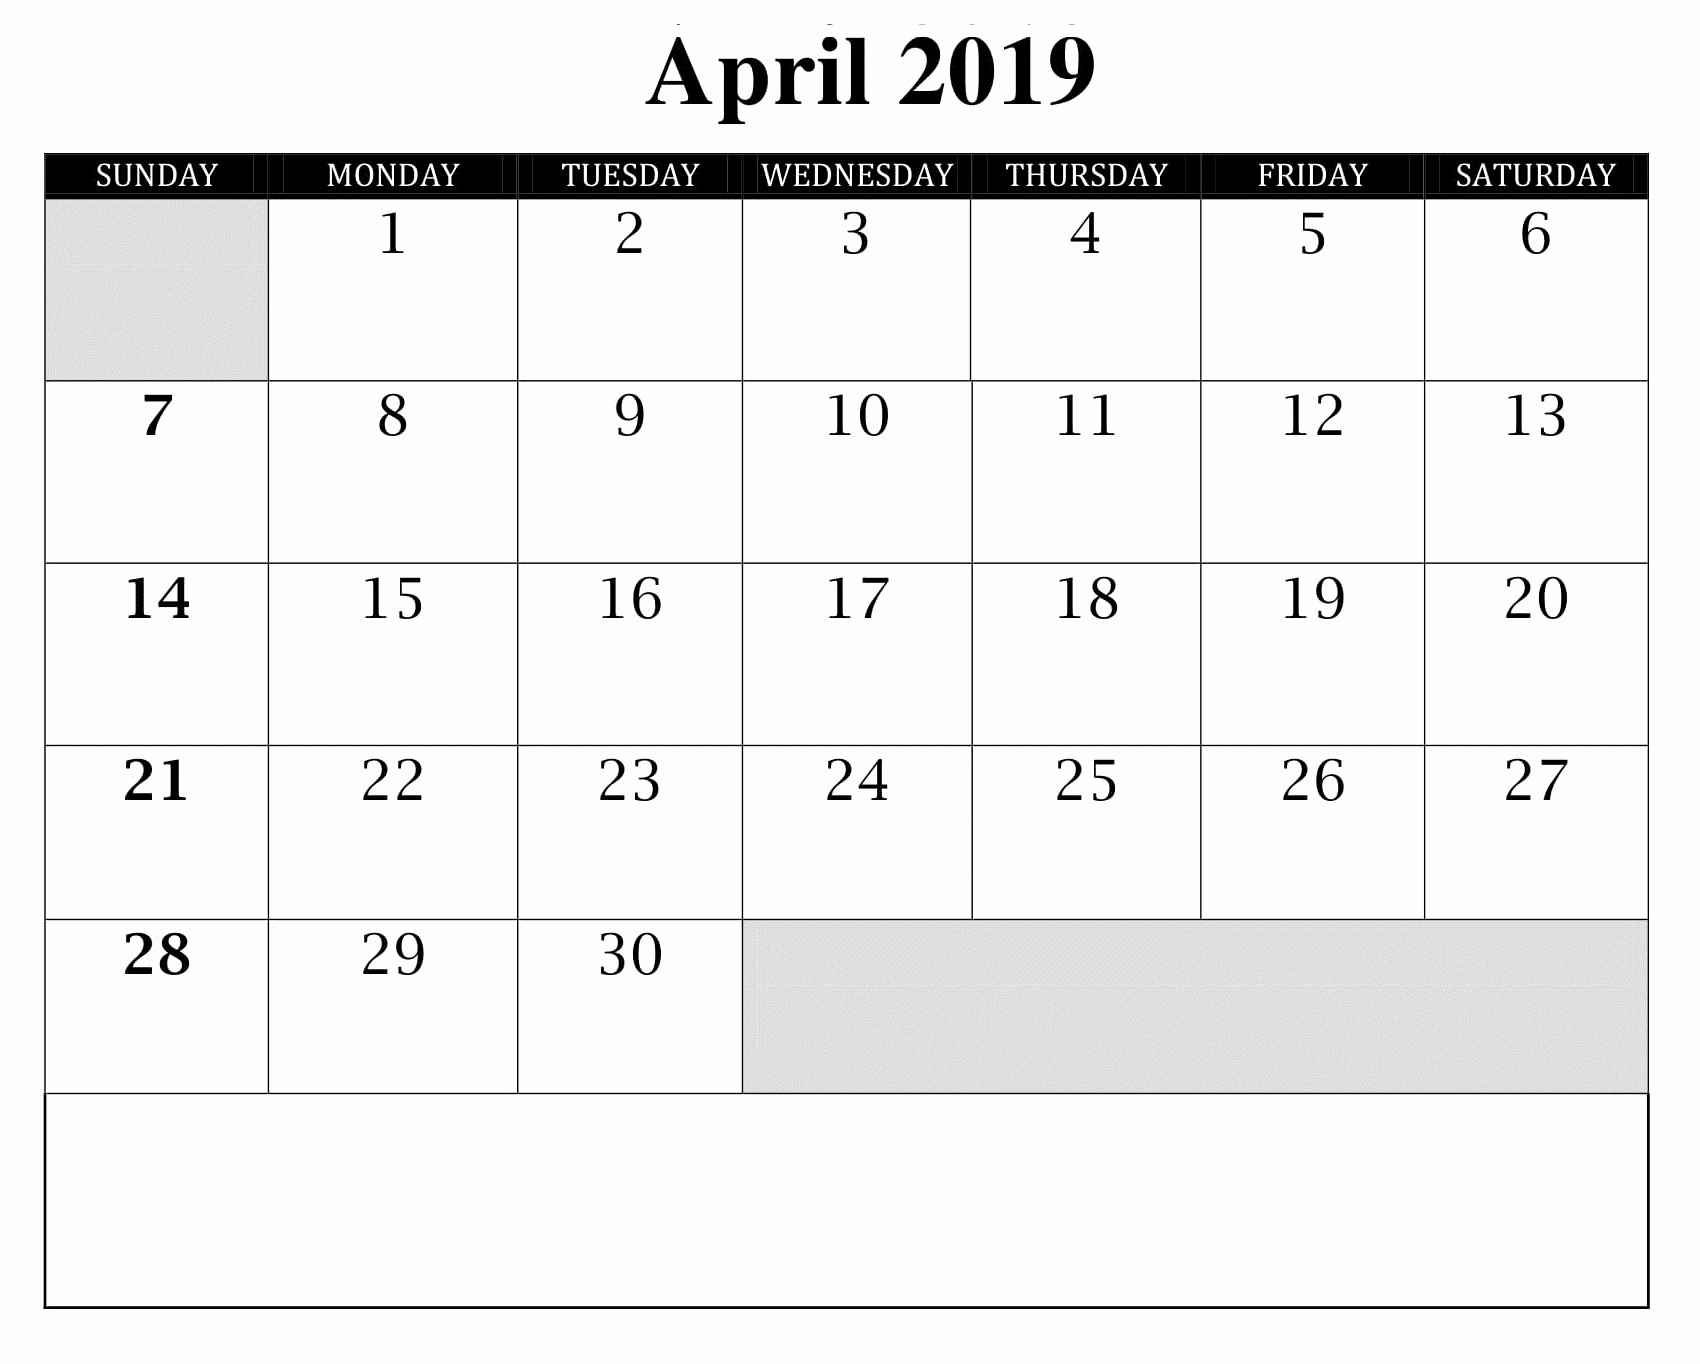 Blank Monthly Calendar Template Pdf New Monthly Blank Calendar April 2019 Printable Template